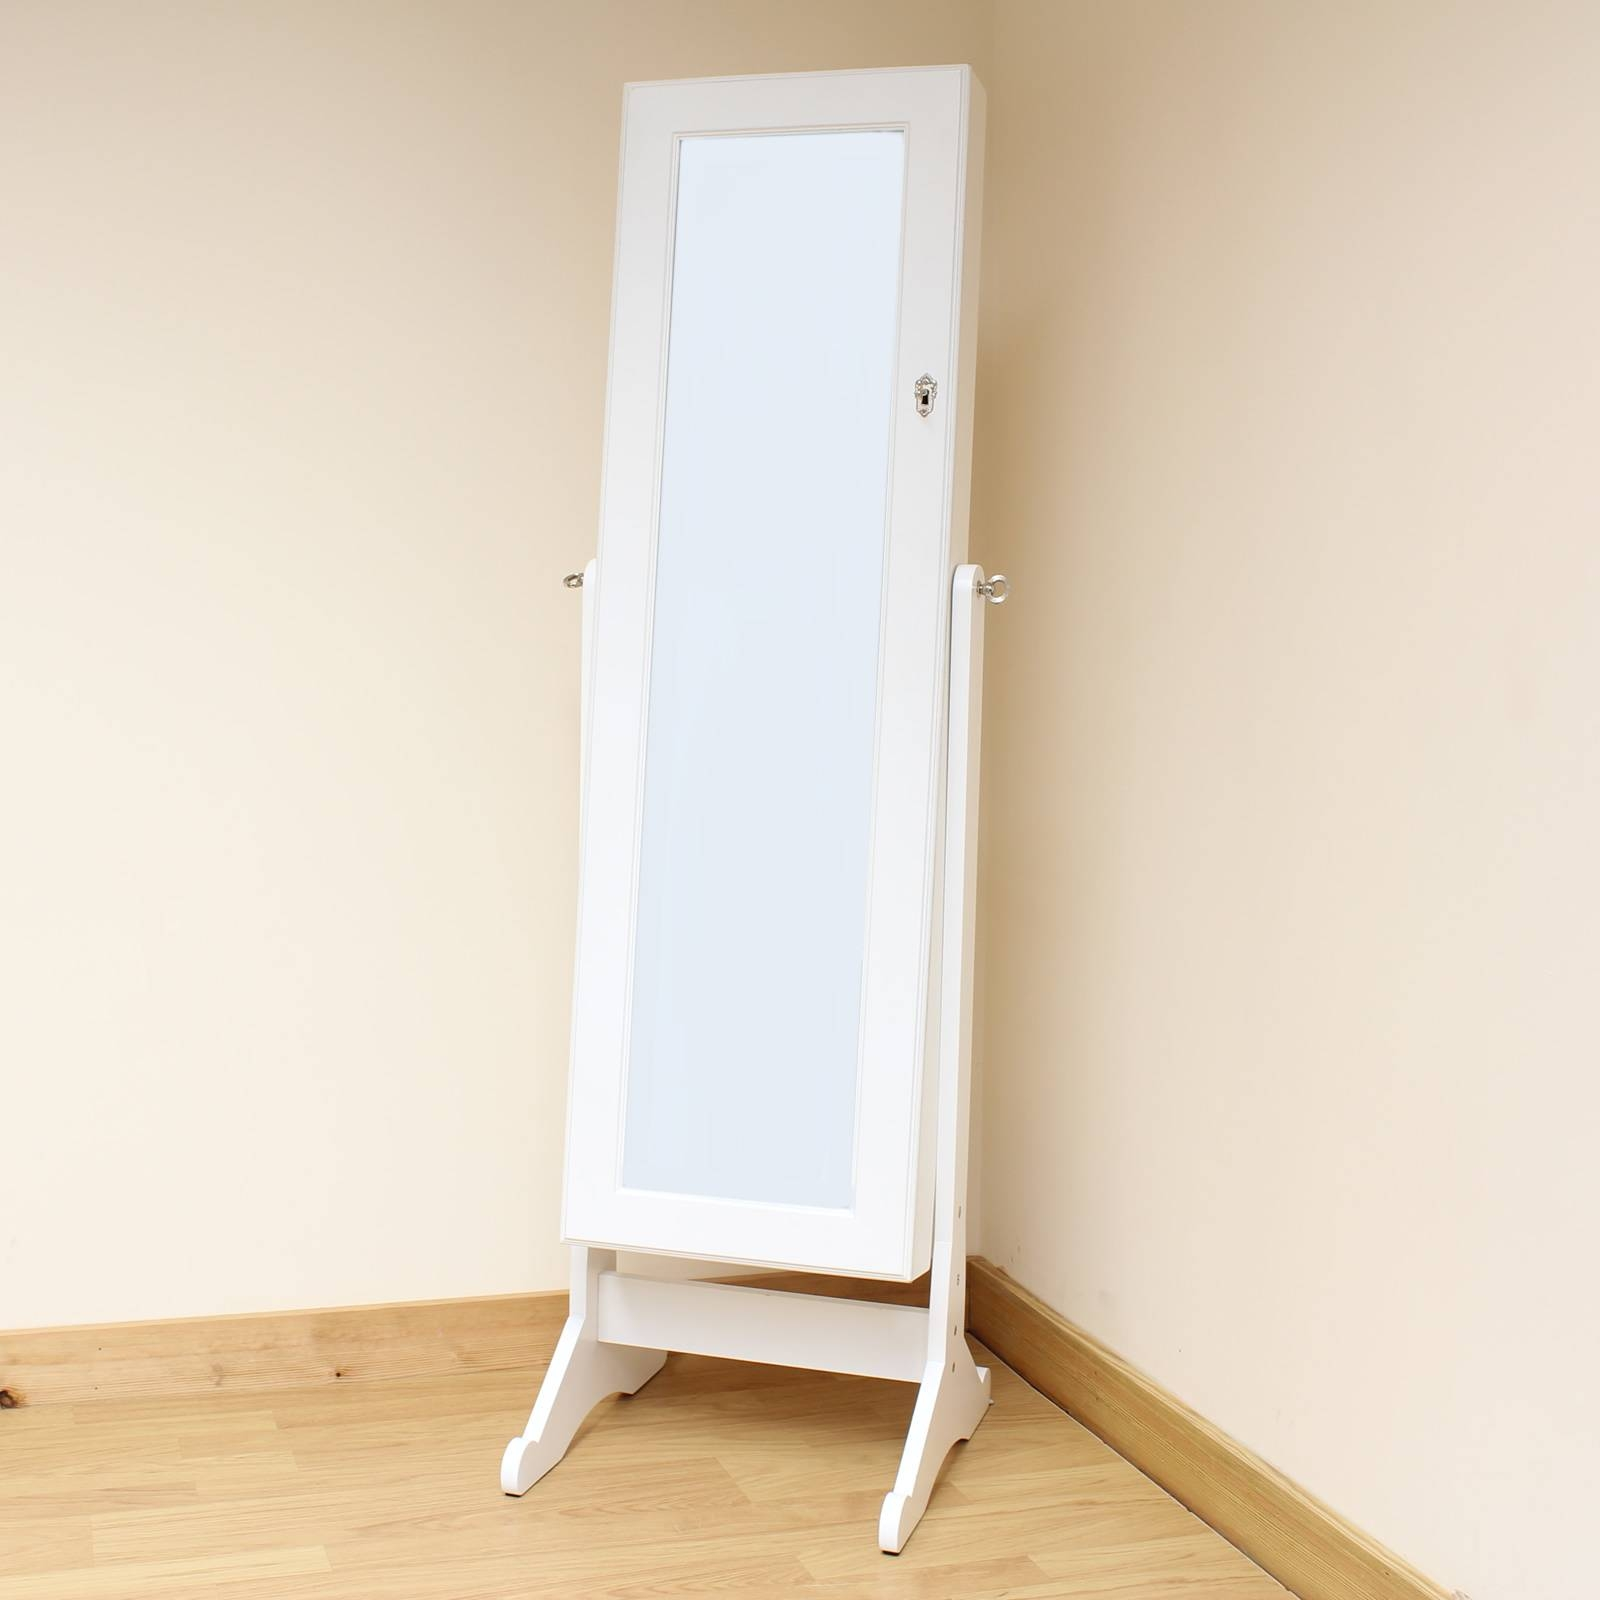 Homeware: Oval Full Length Standing Mirror | Large Floor Mirrors Pertaining To Free Standing Long Mirrors (View 12 of 15)